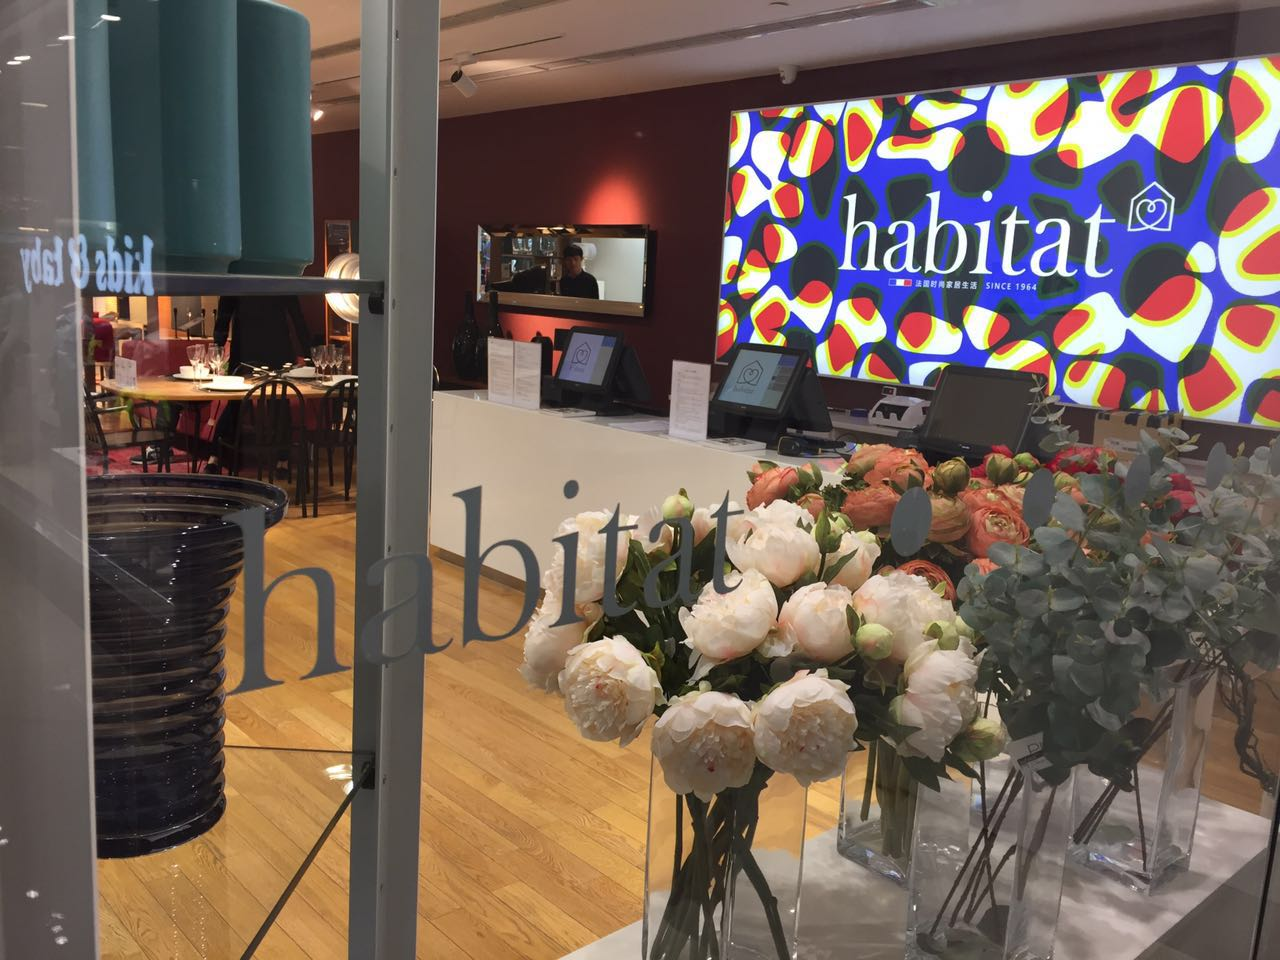 British home store habitat opens first beijing store in for Habitat outlet